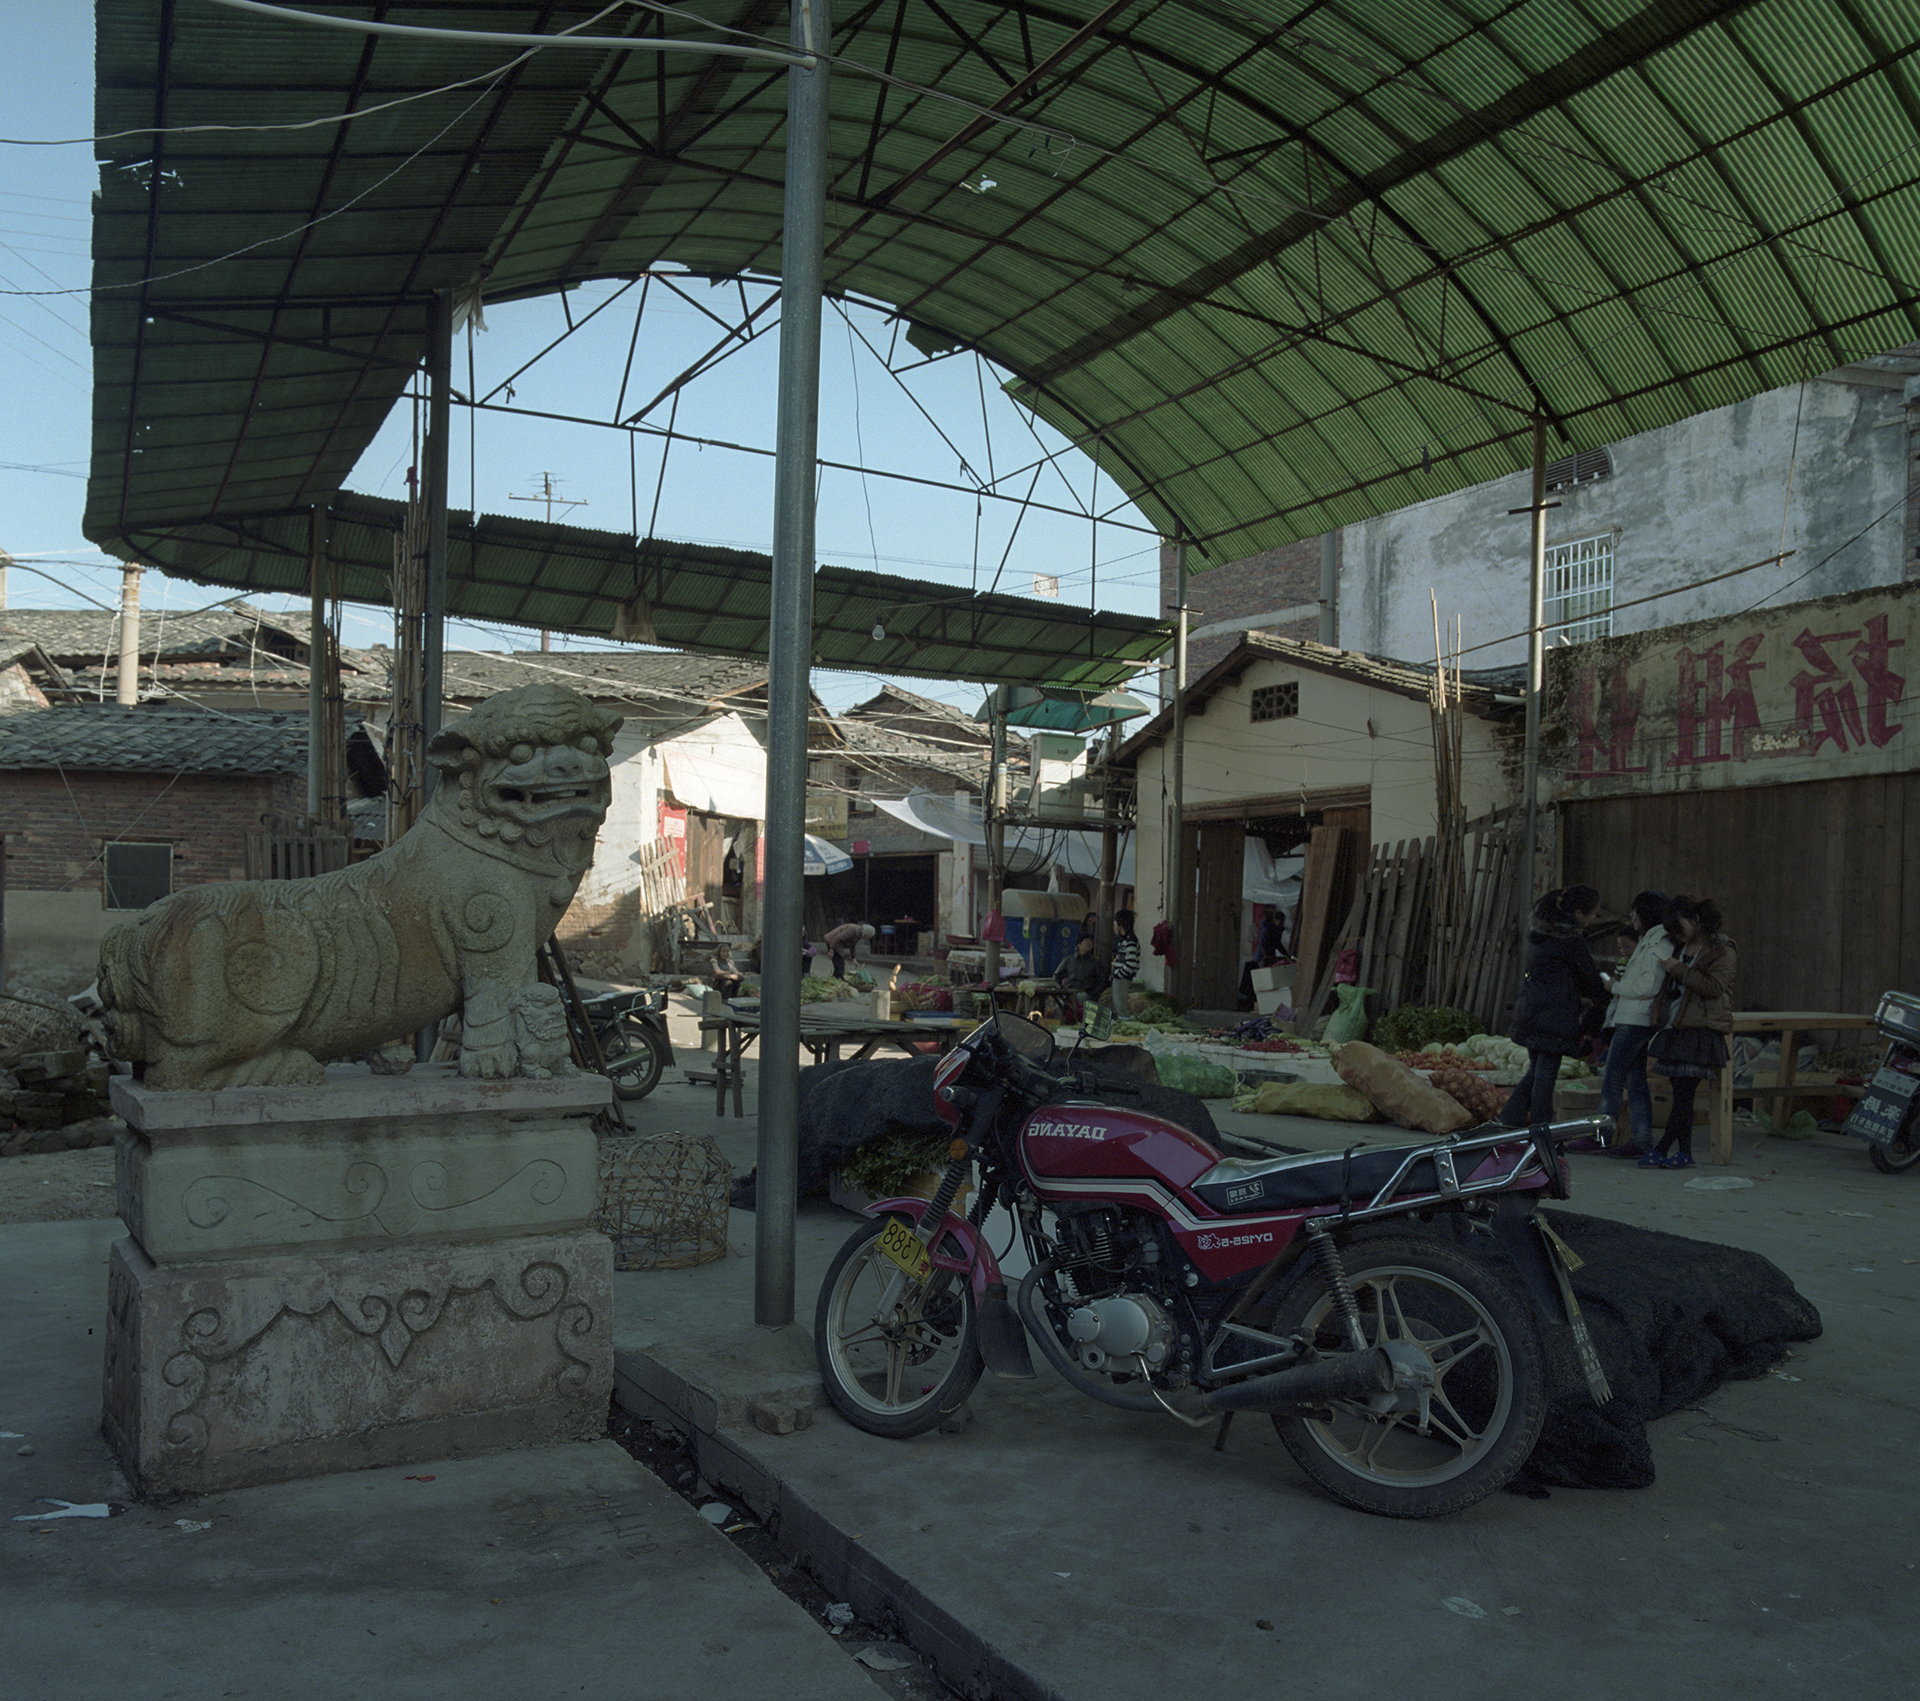 2009 Fujian - entrance to the village. For motorbikes is inside the village no space.